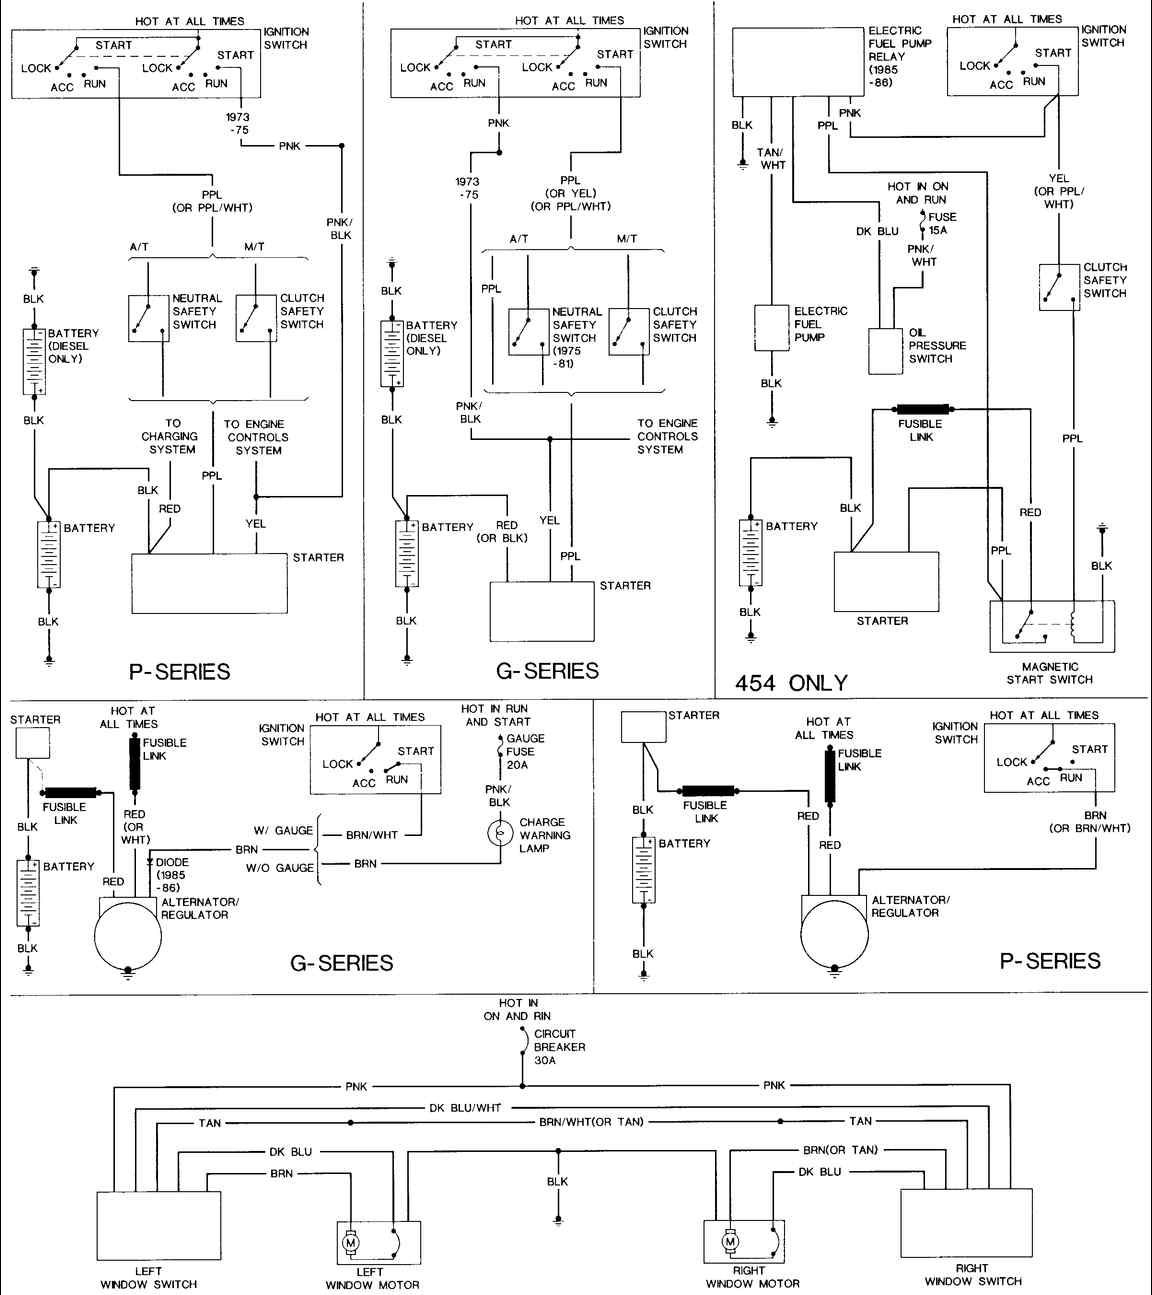 [DIAGRAM_38IU]  9709 1985 Dodge Van Electrical Wiring Diagrams | Wiring Library | 1985 C30 Vacuum Diagram Wiring Schematic |  | Wiring Library